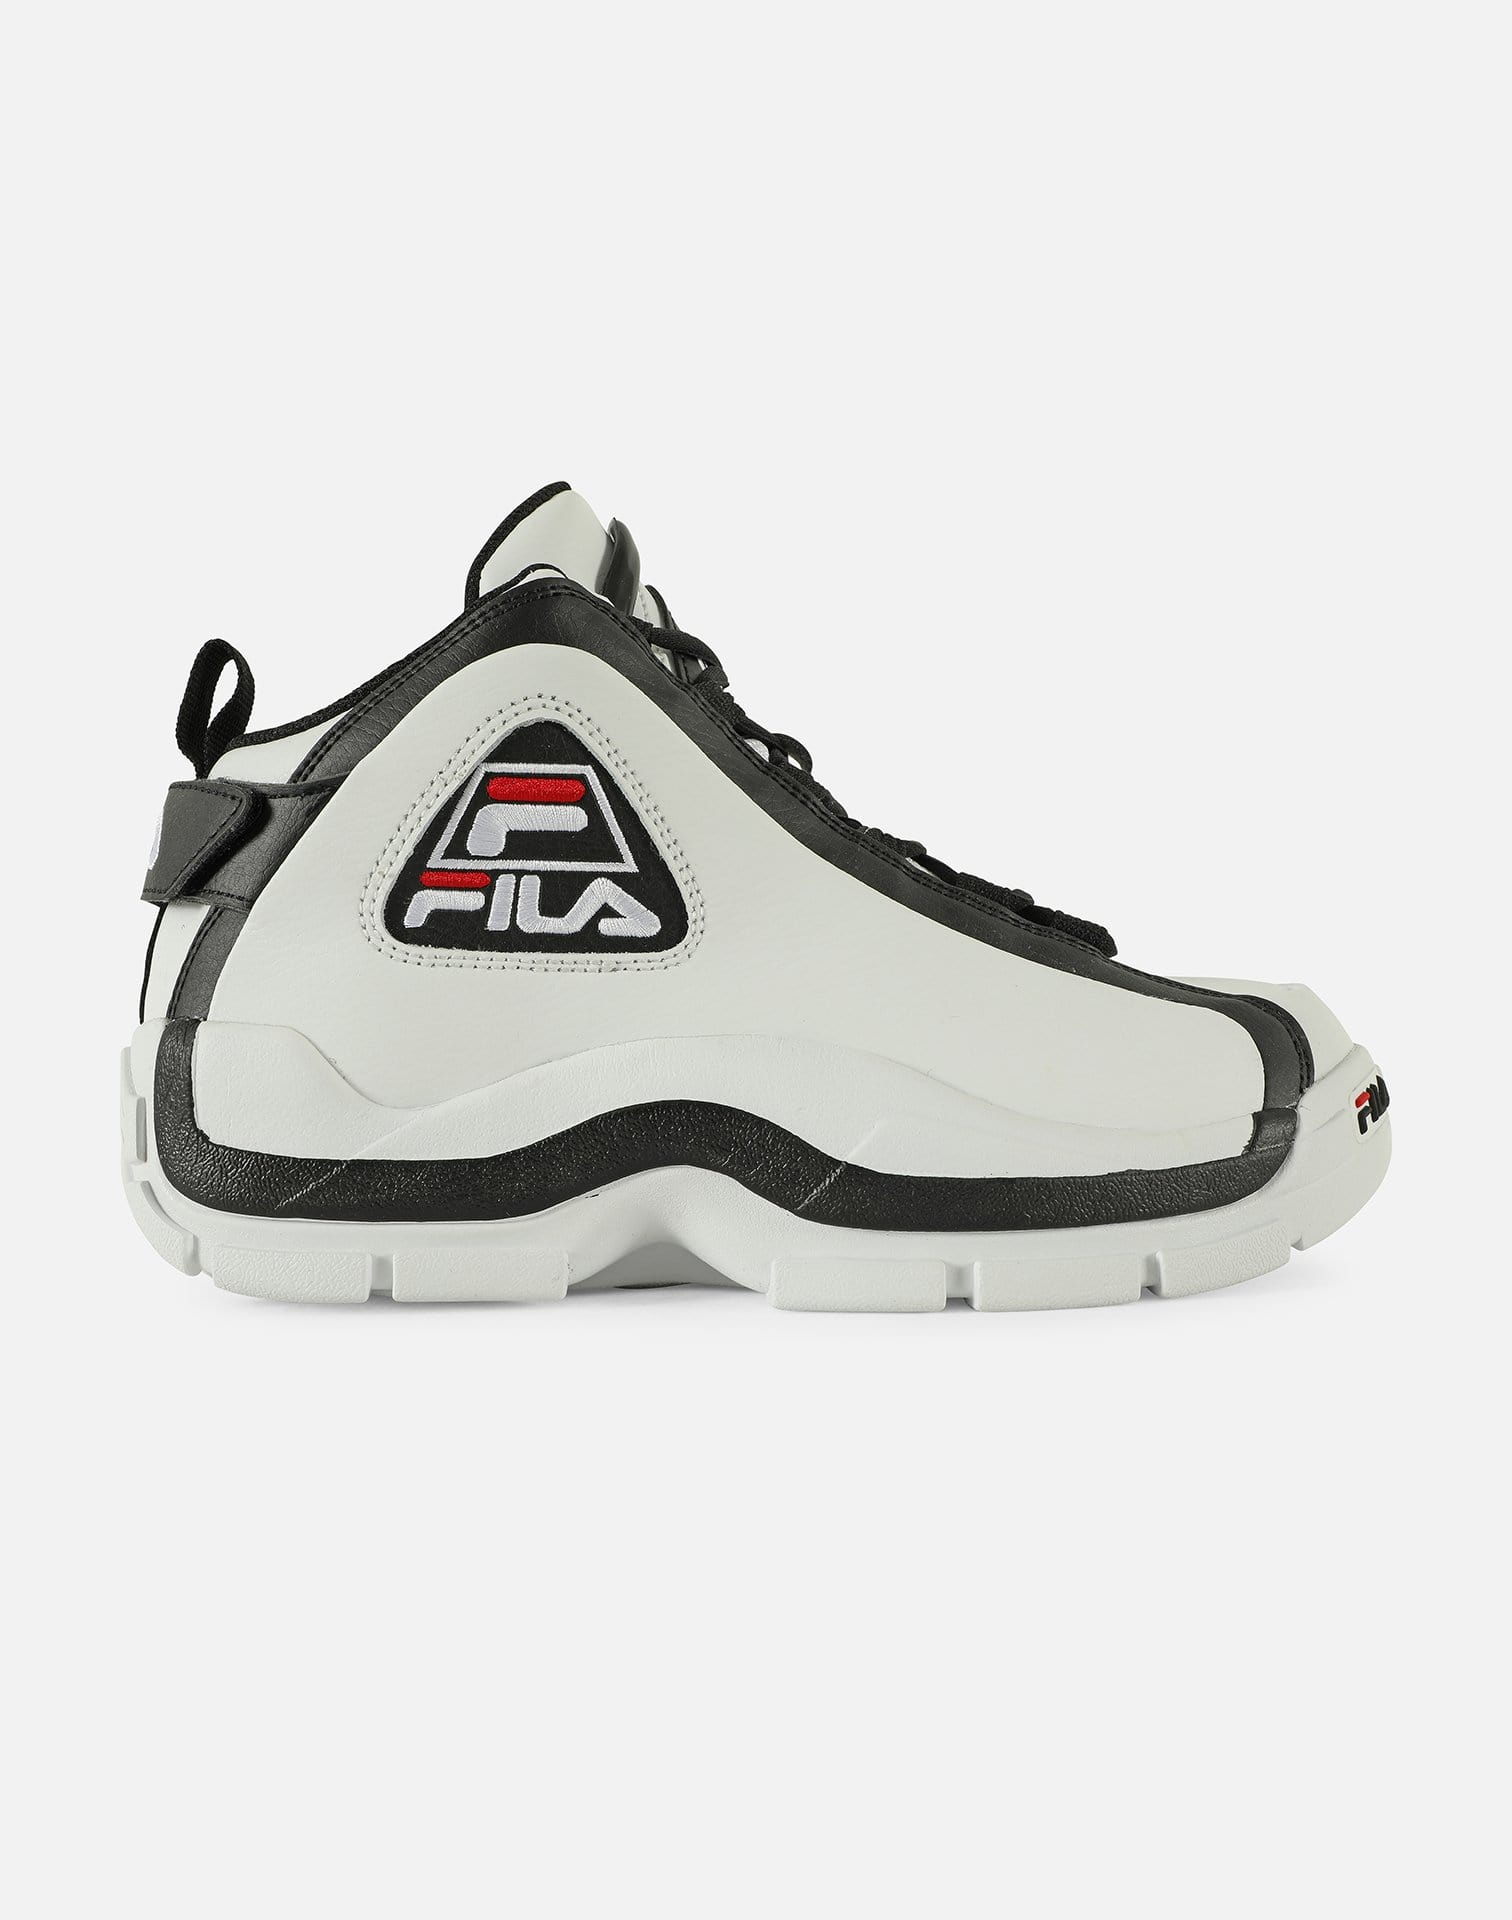 FILA Men's Grant Hill 2